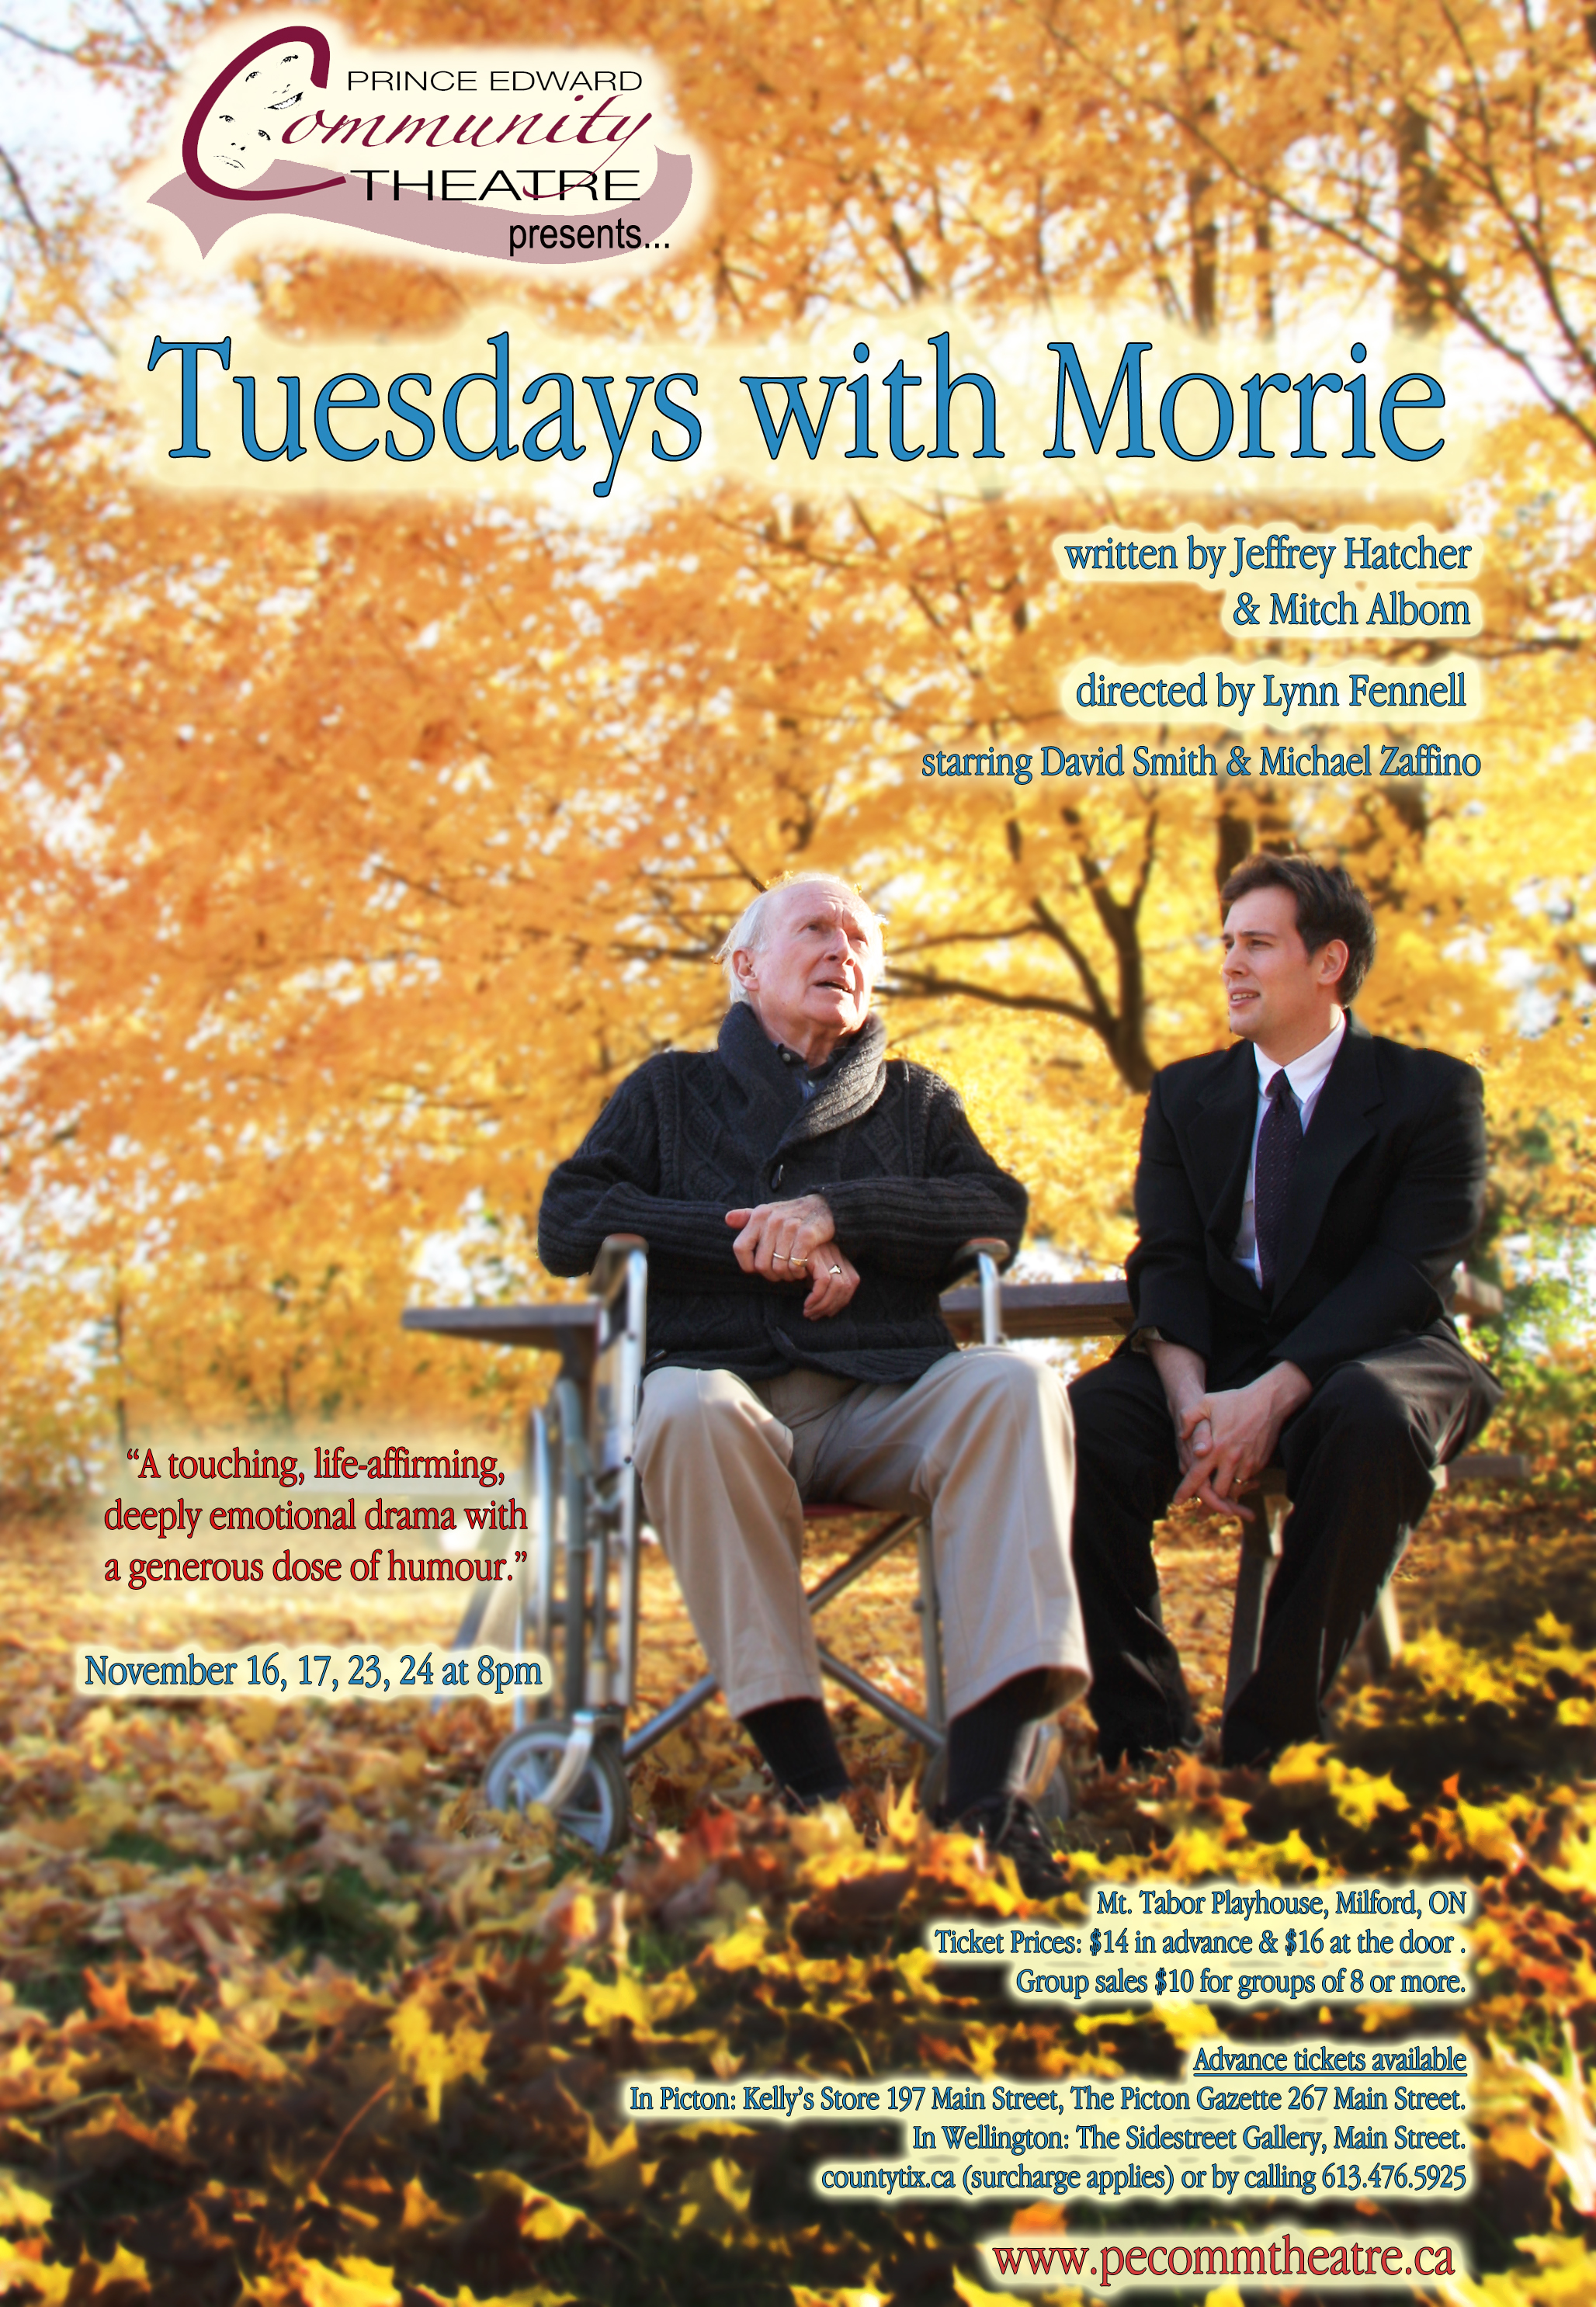 tuesdays with morrie Free tuesdays with morrie papers, essays, and research papers.